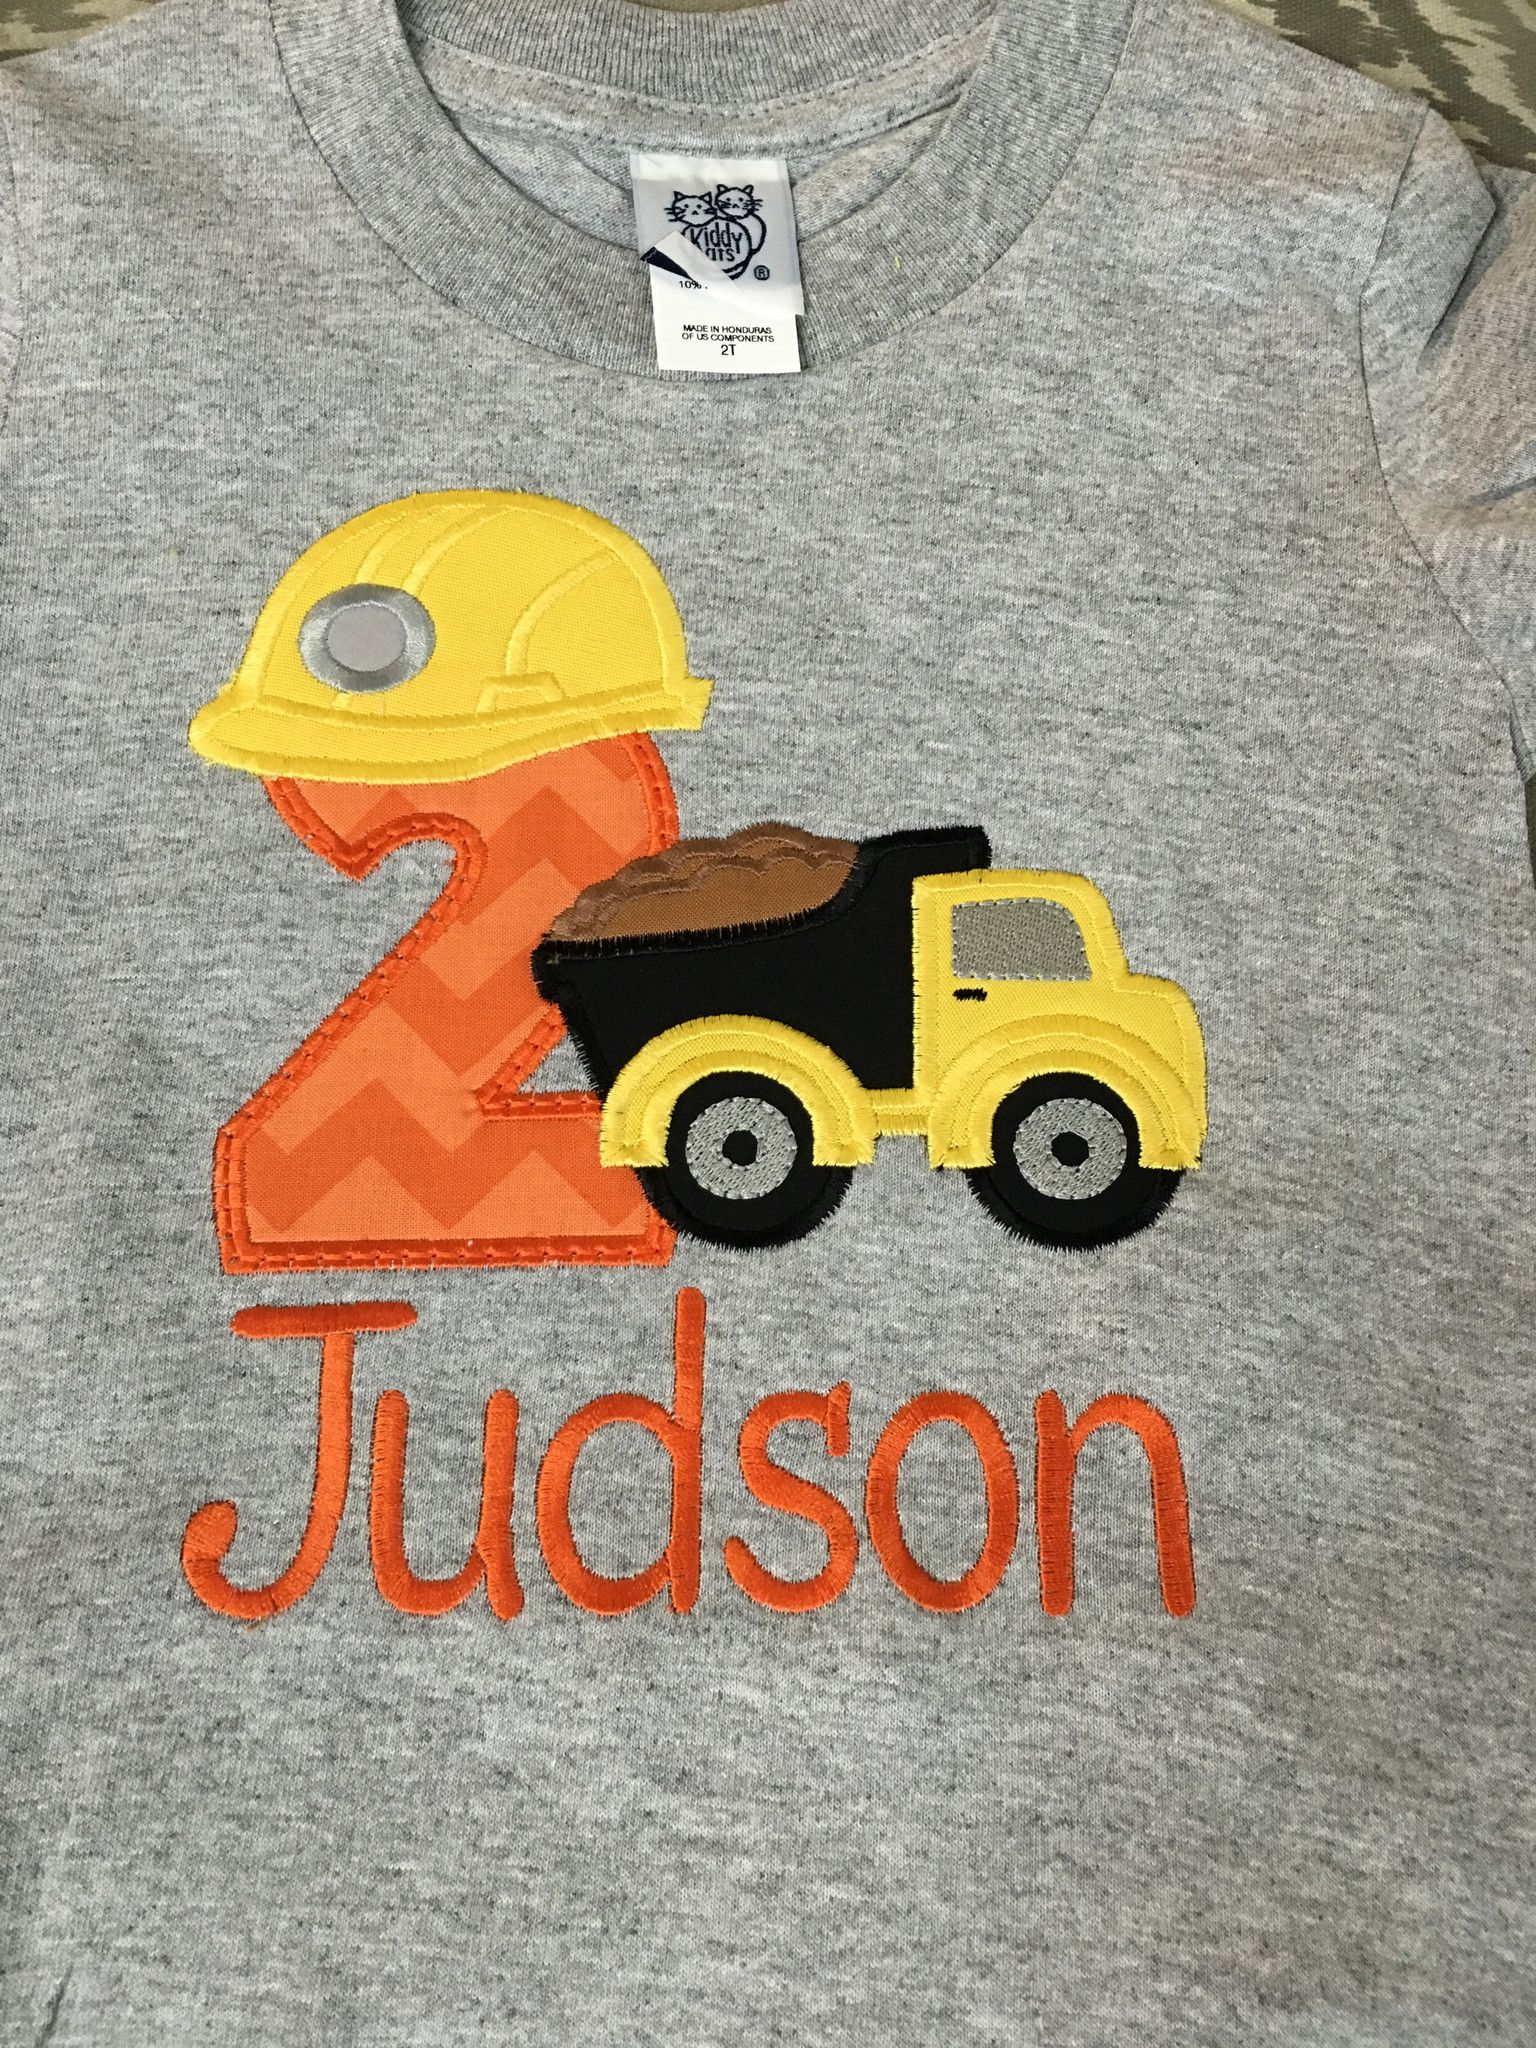 Infant 6 Month 12 18 24 Toddler Shirt Sizes 2t 3t 4t 5t Youth Xs 4 5 Small 8 Medium 10 Large 14 16